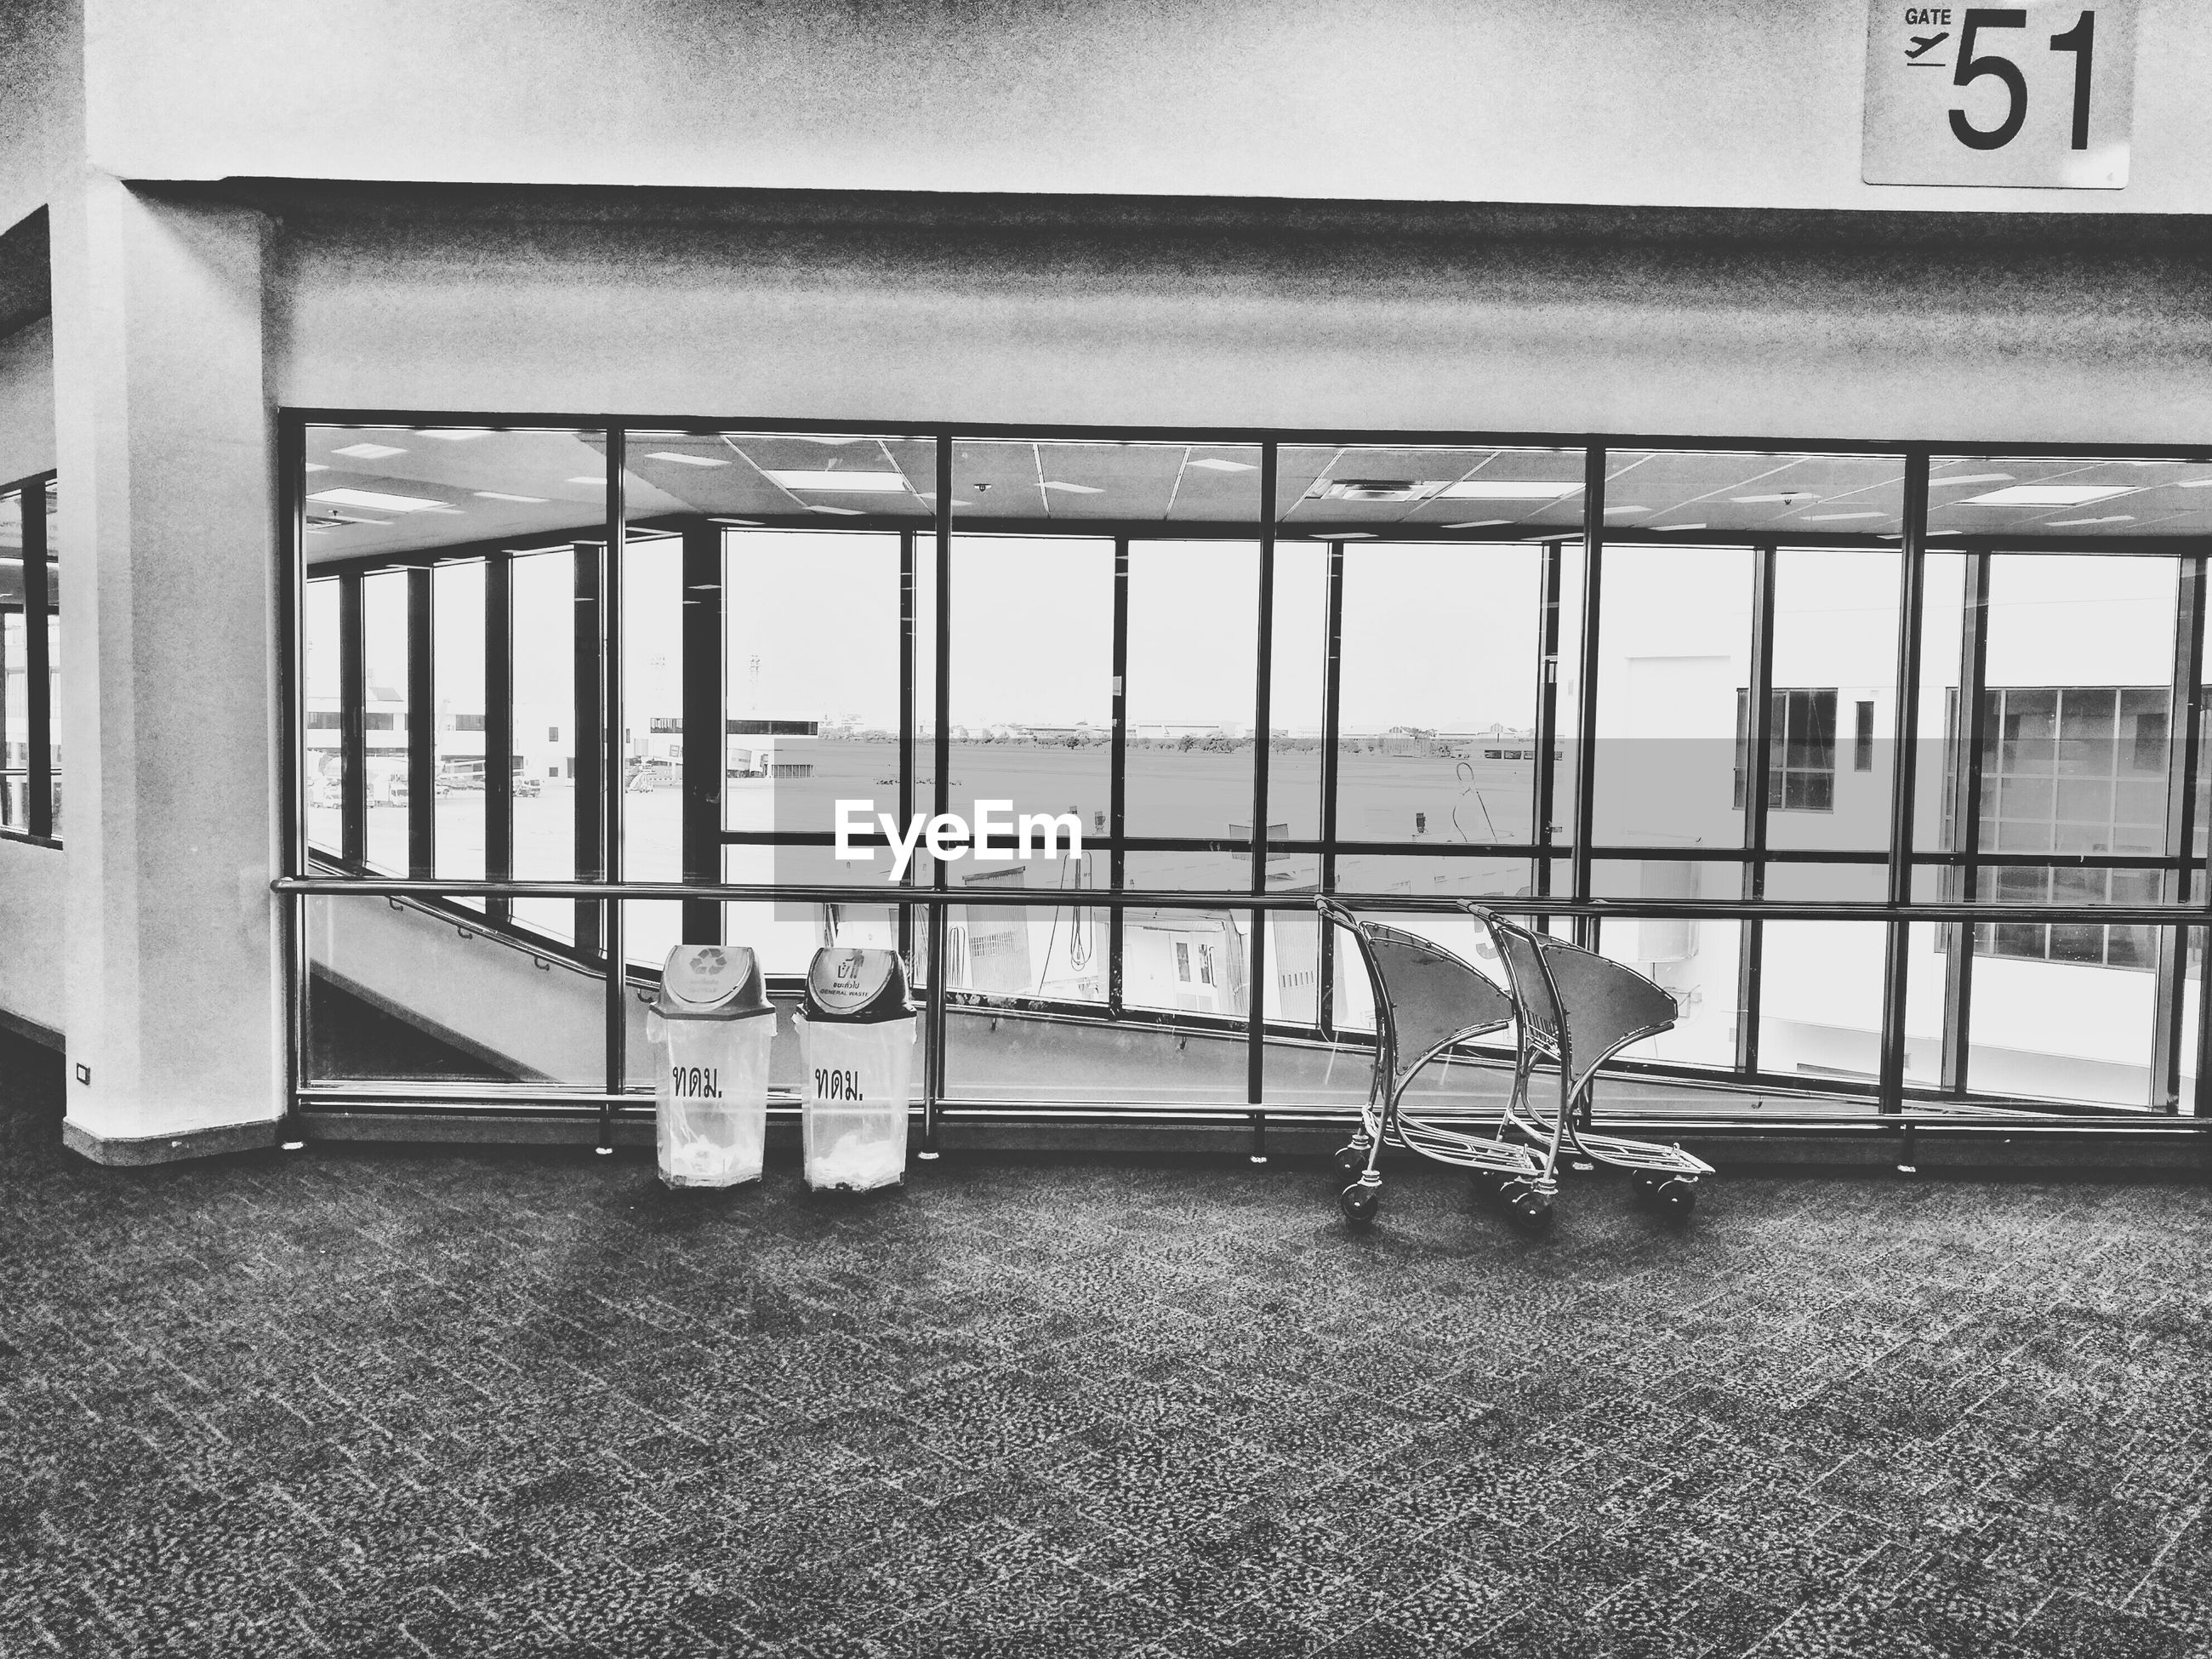 Trolley and garbage cans at airport